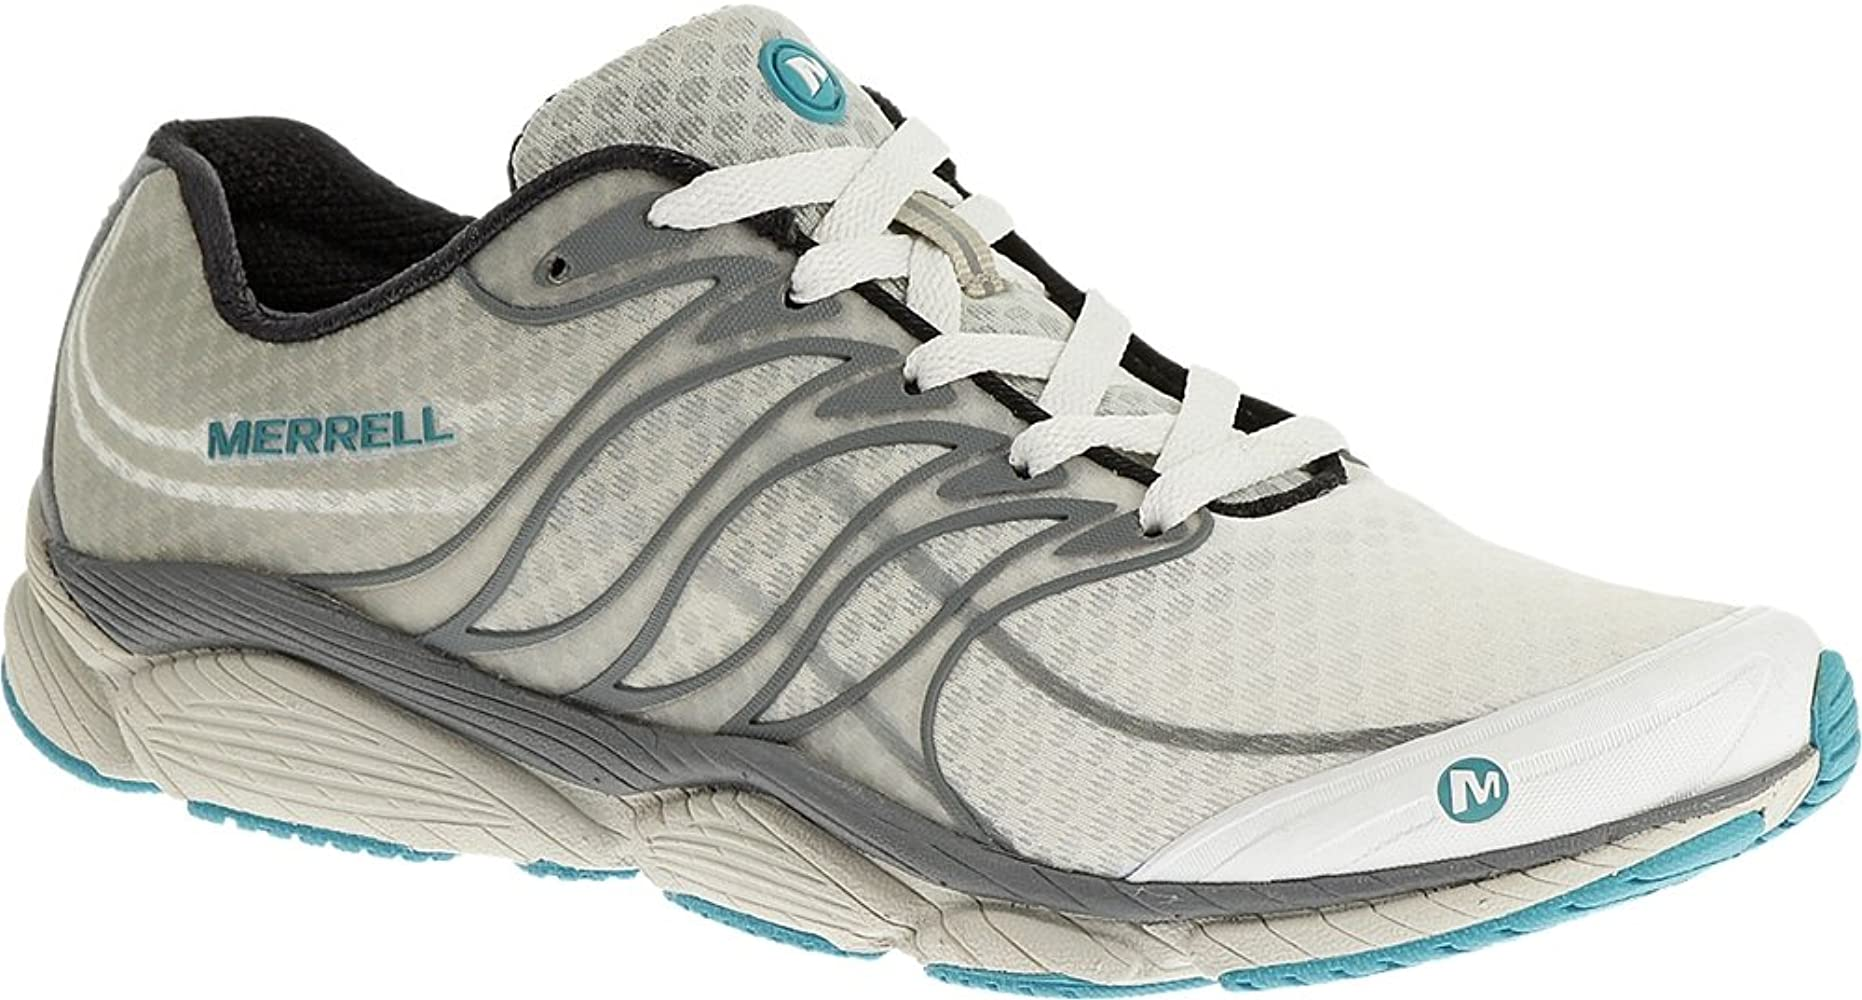 Zapatillas de trail running para mujer All Out Flash, Blanco, 6 M ...